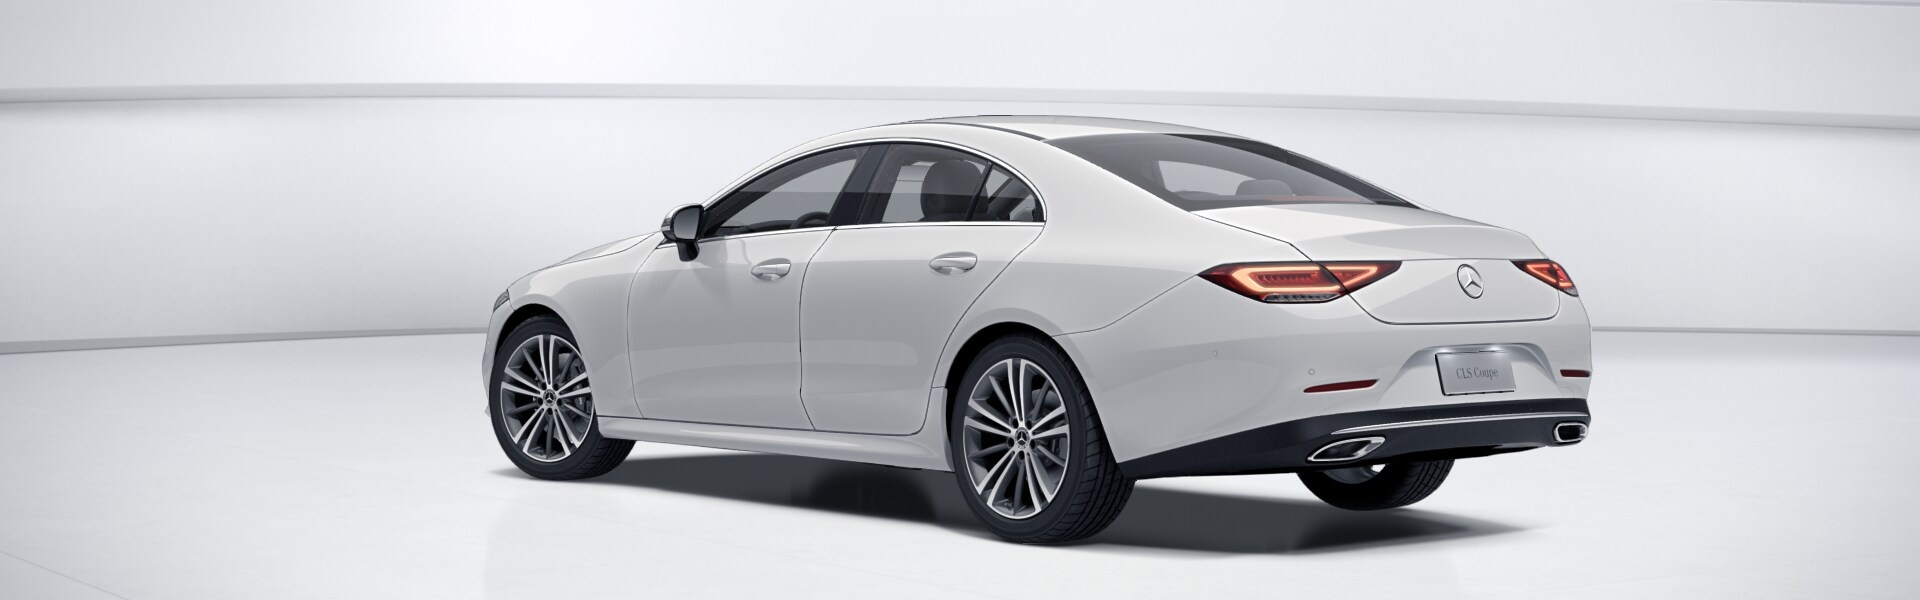 2020-mercedes-benz-cls-260-china-4.jpg